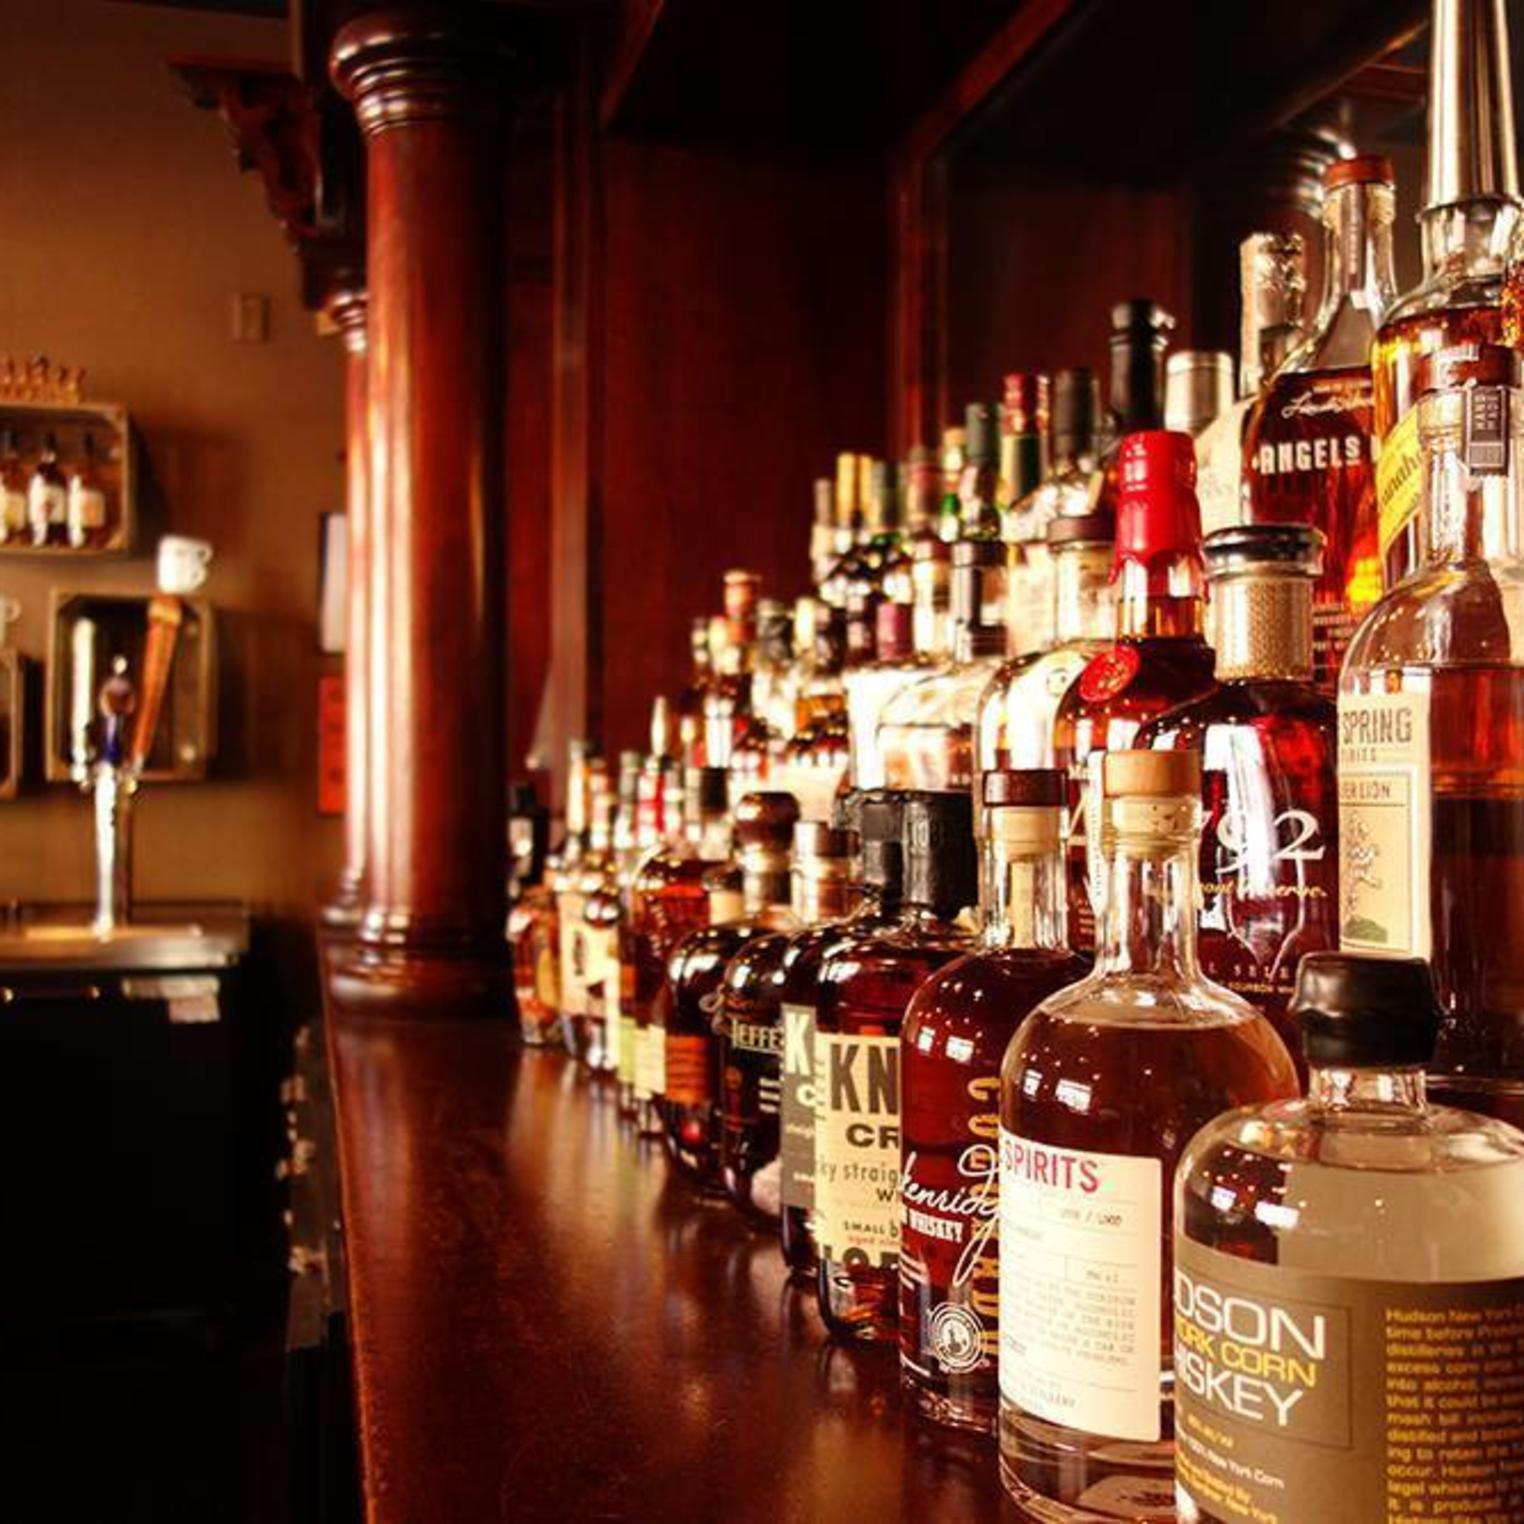 Checkout our extensive whiskey list at the bar.